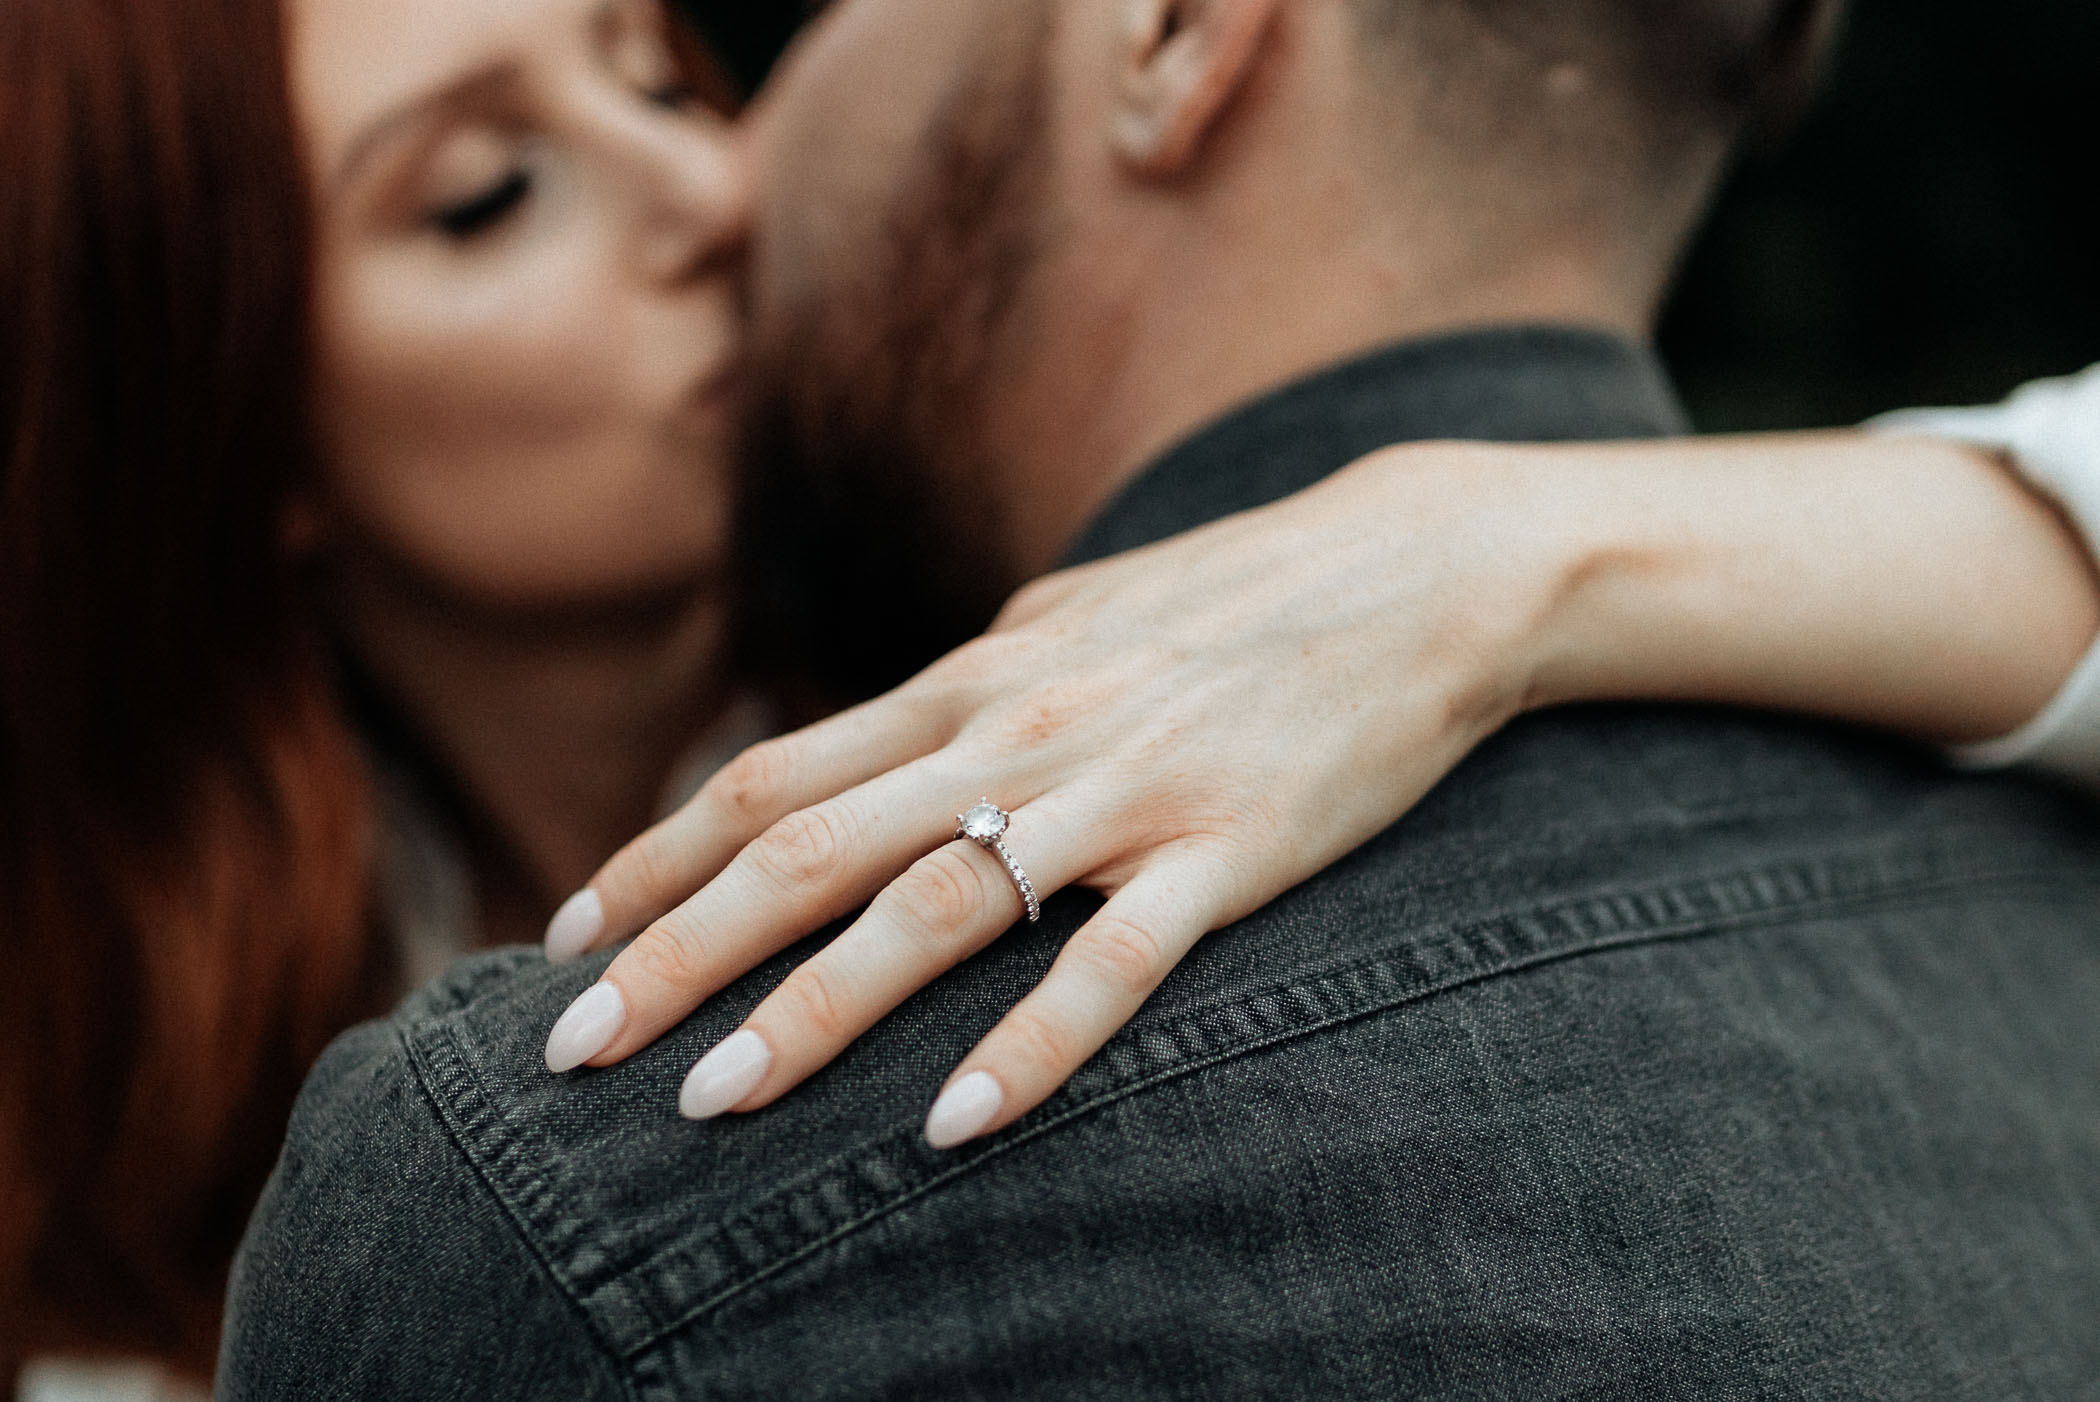 Detail photo of engaged girl wearing wedding ring and kissing her fiancé in DFW